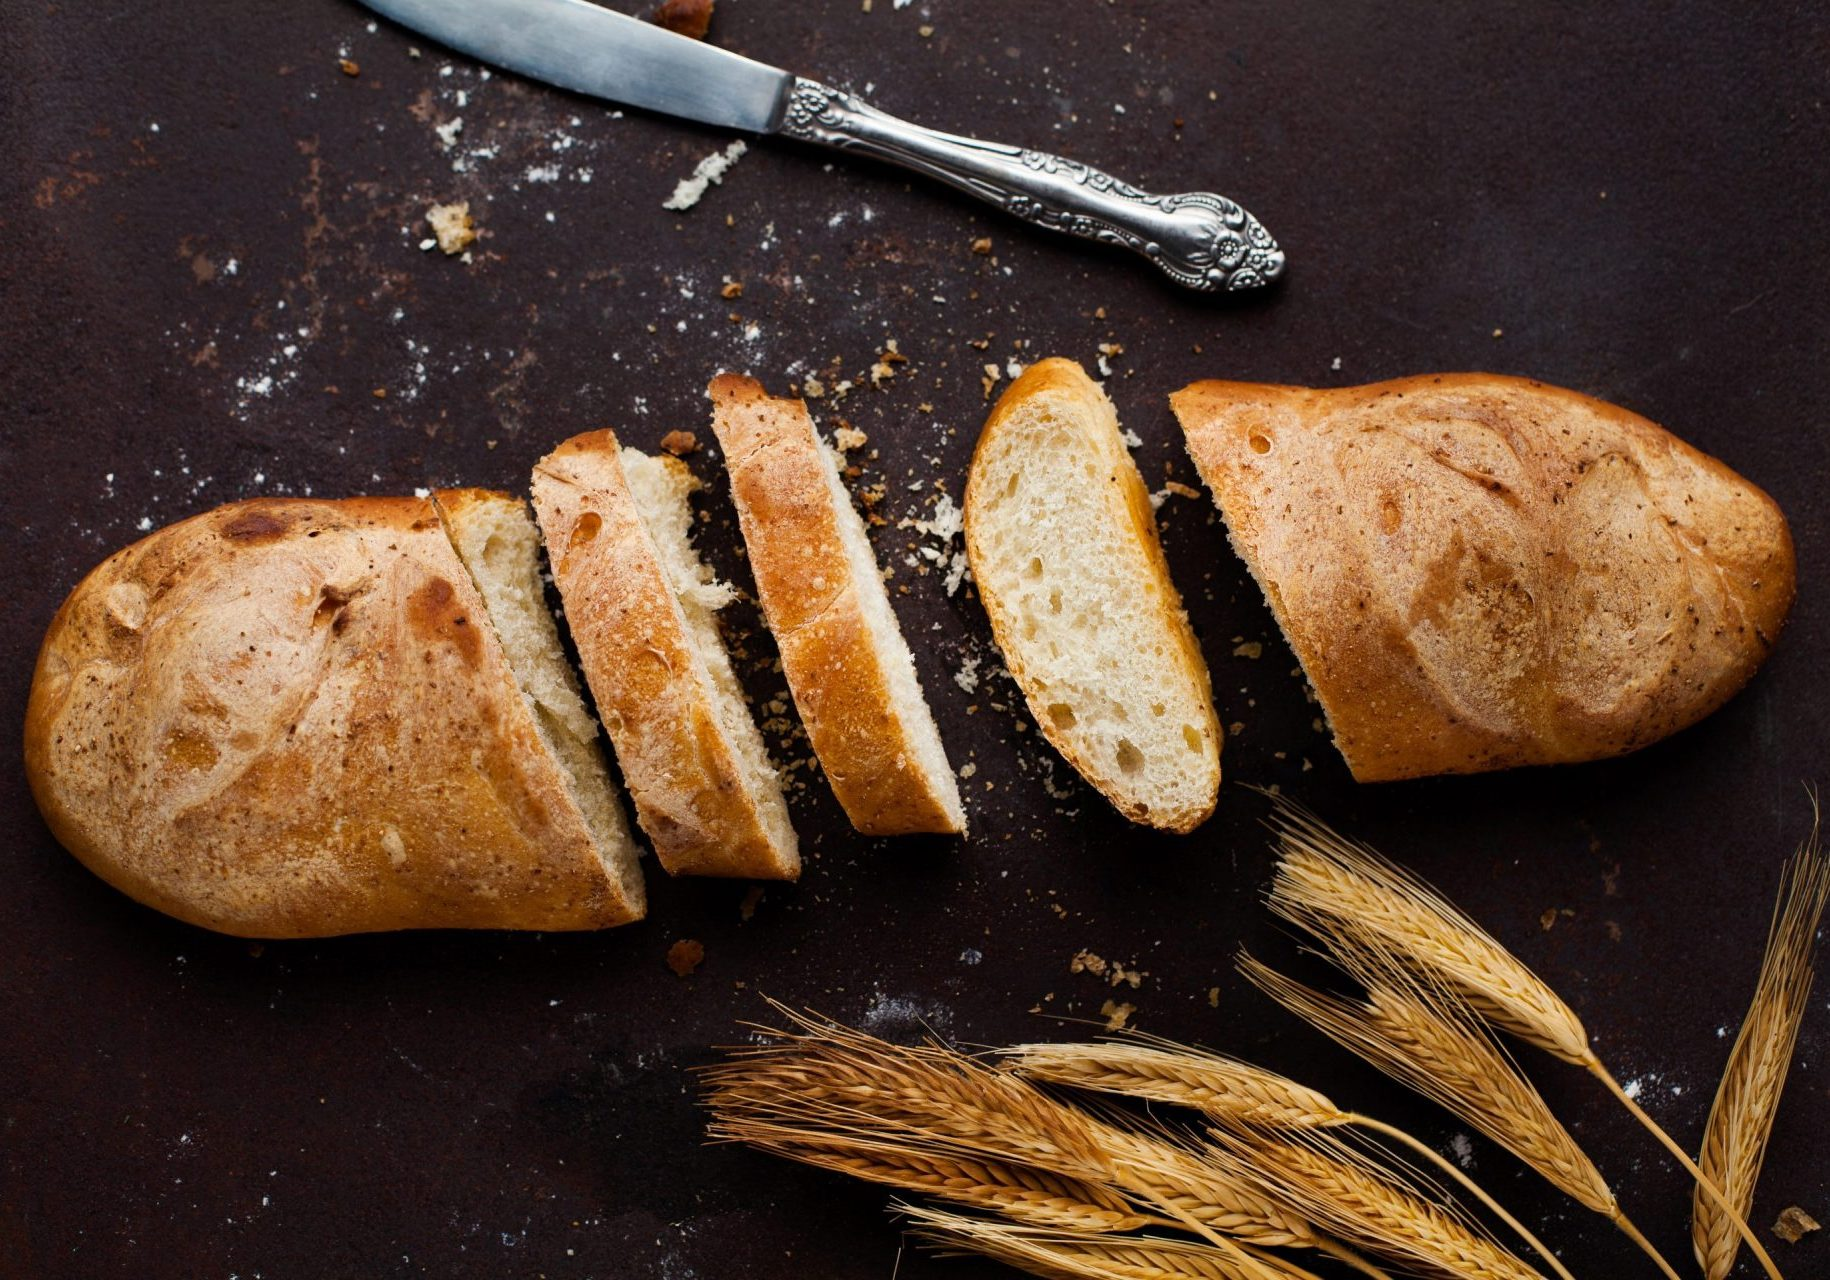 Baking Baguette with three slices and a knife lying on a dark background